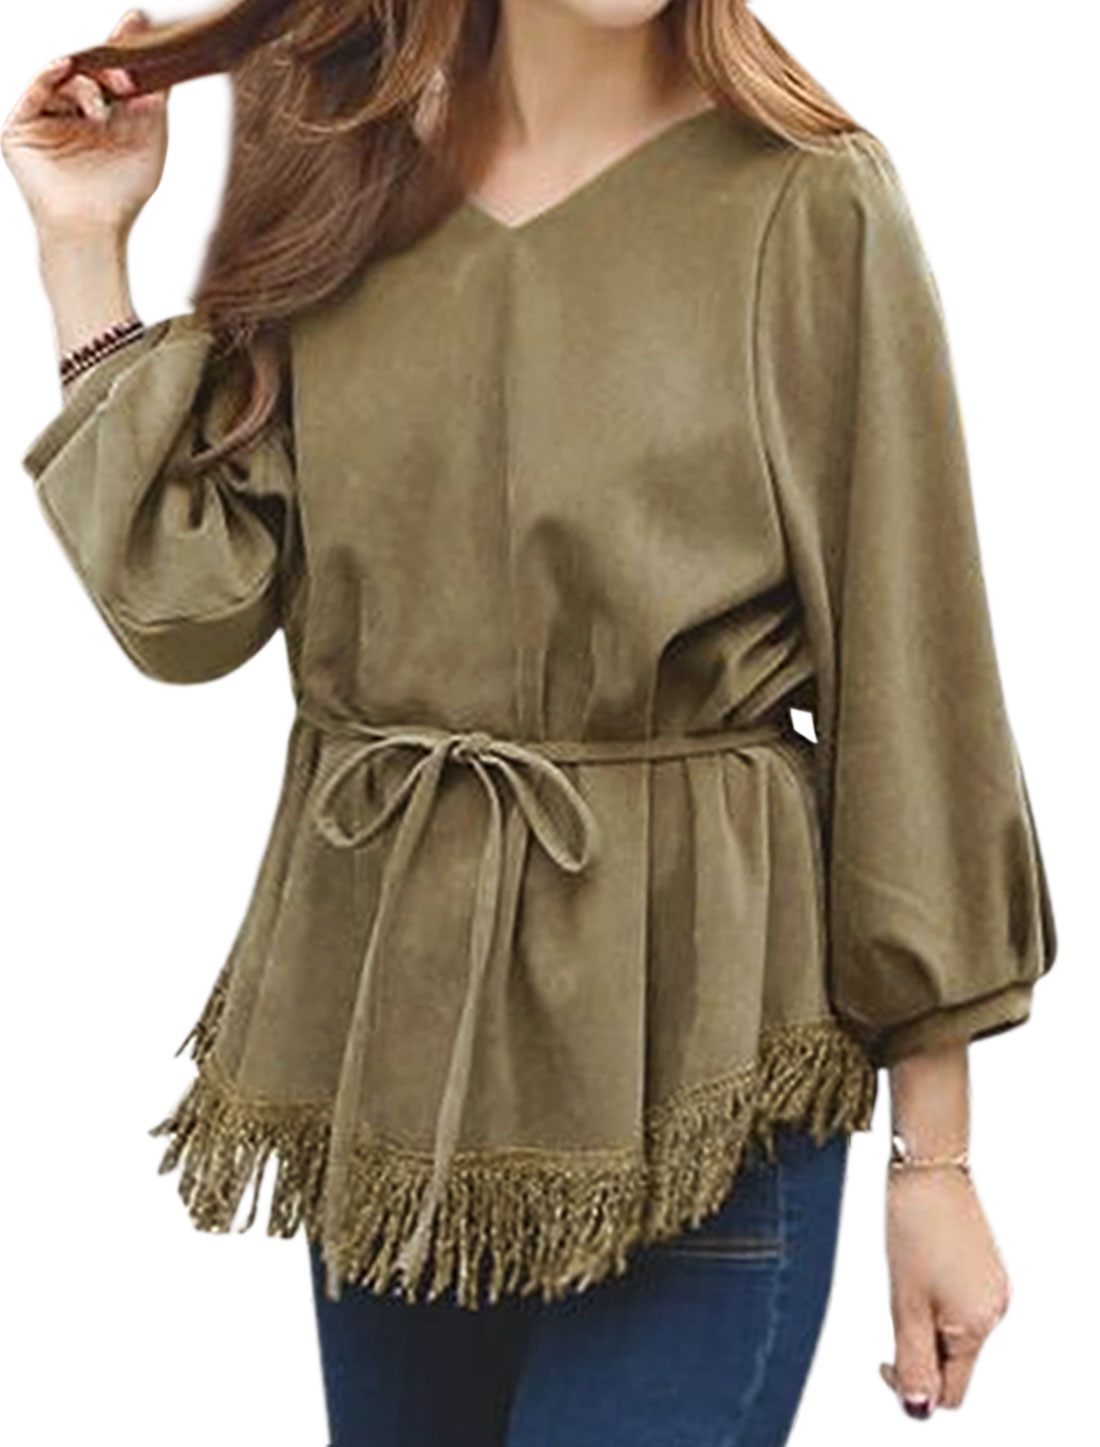 Women V Neckline Bishop Sleeves Tassels Hem Loose Pullover Top w Belt Green XS